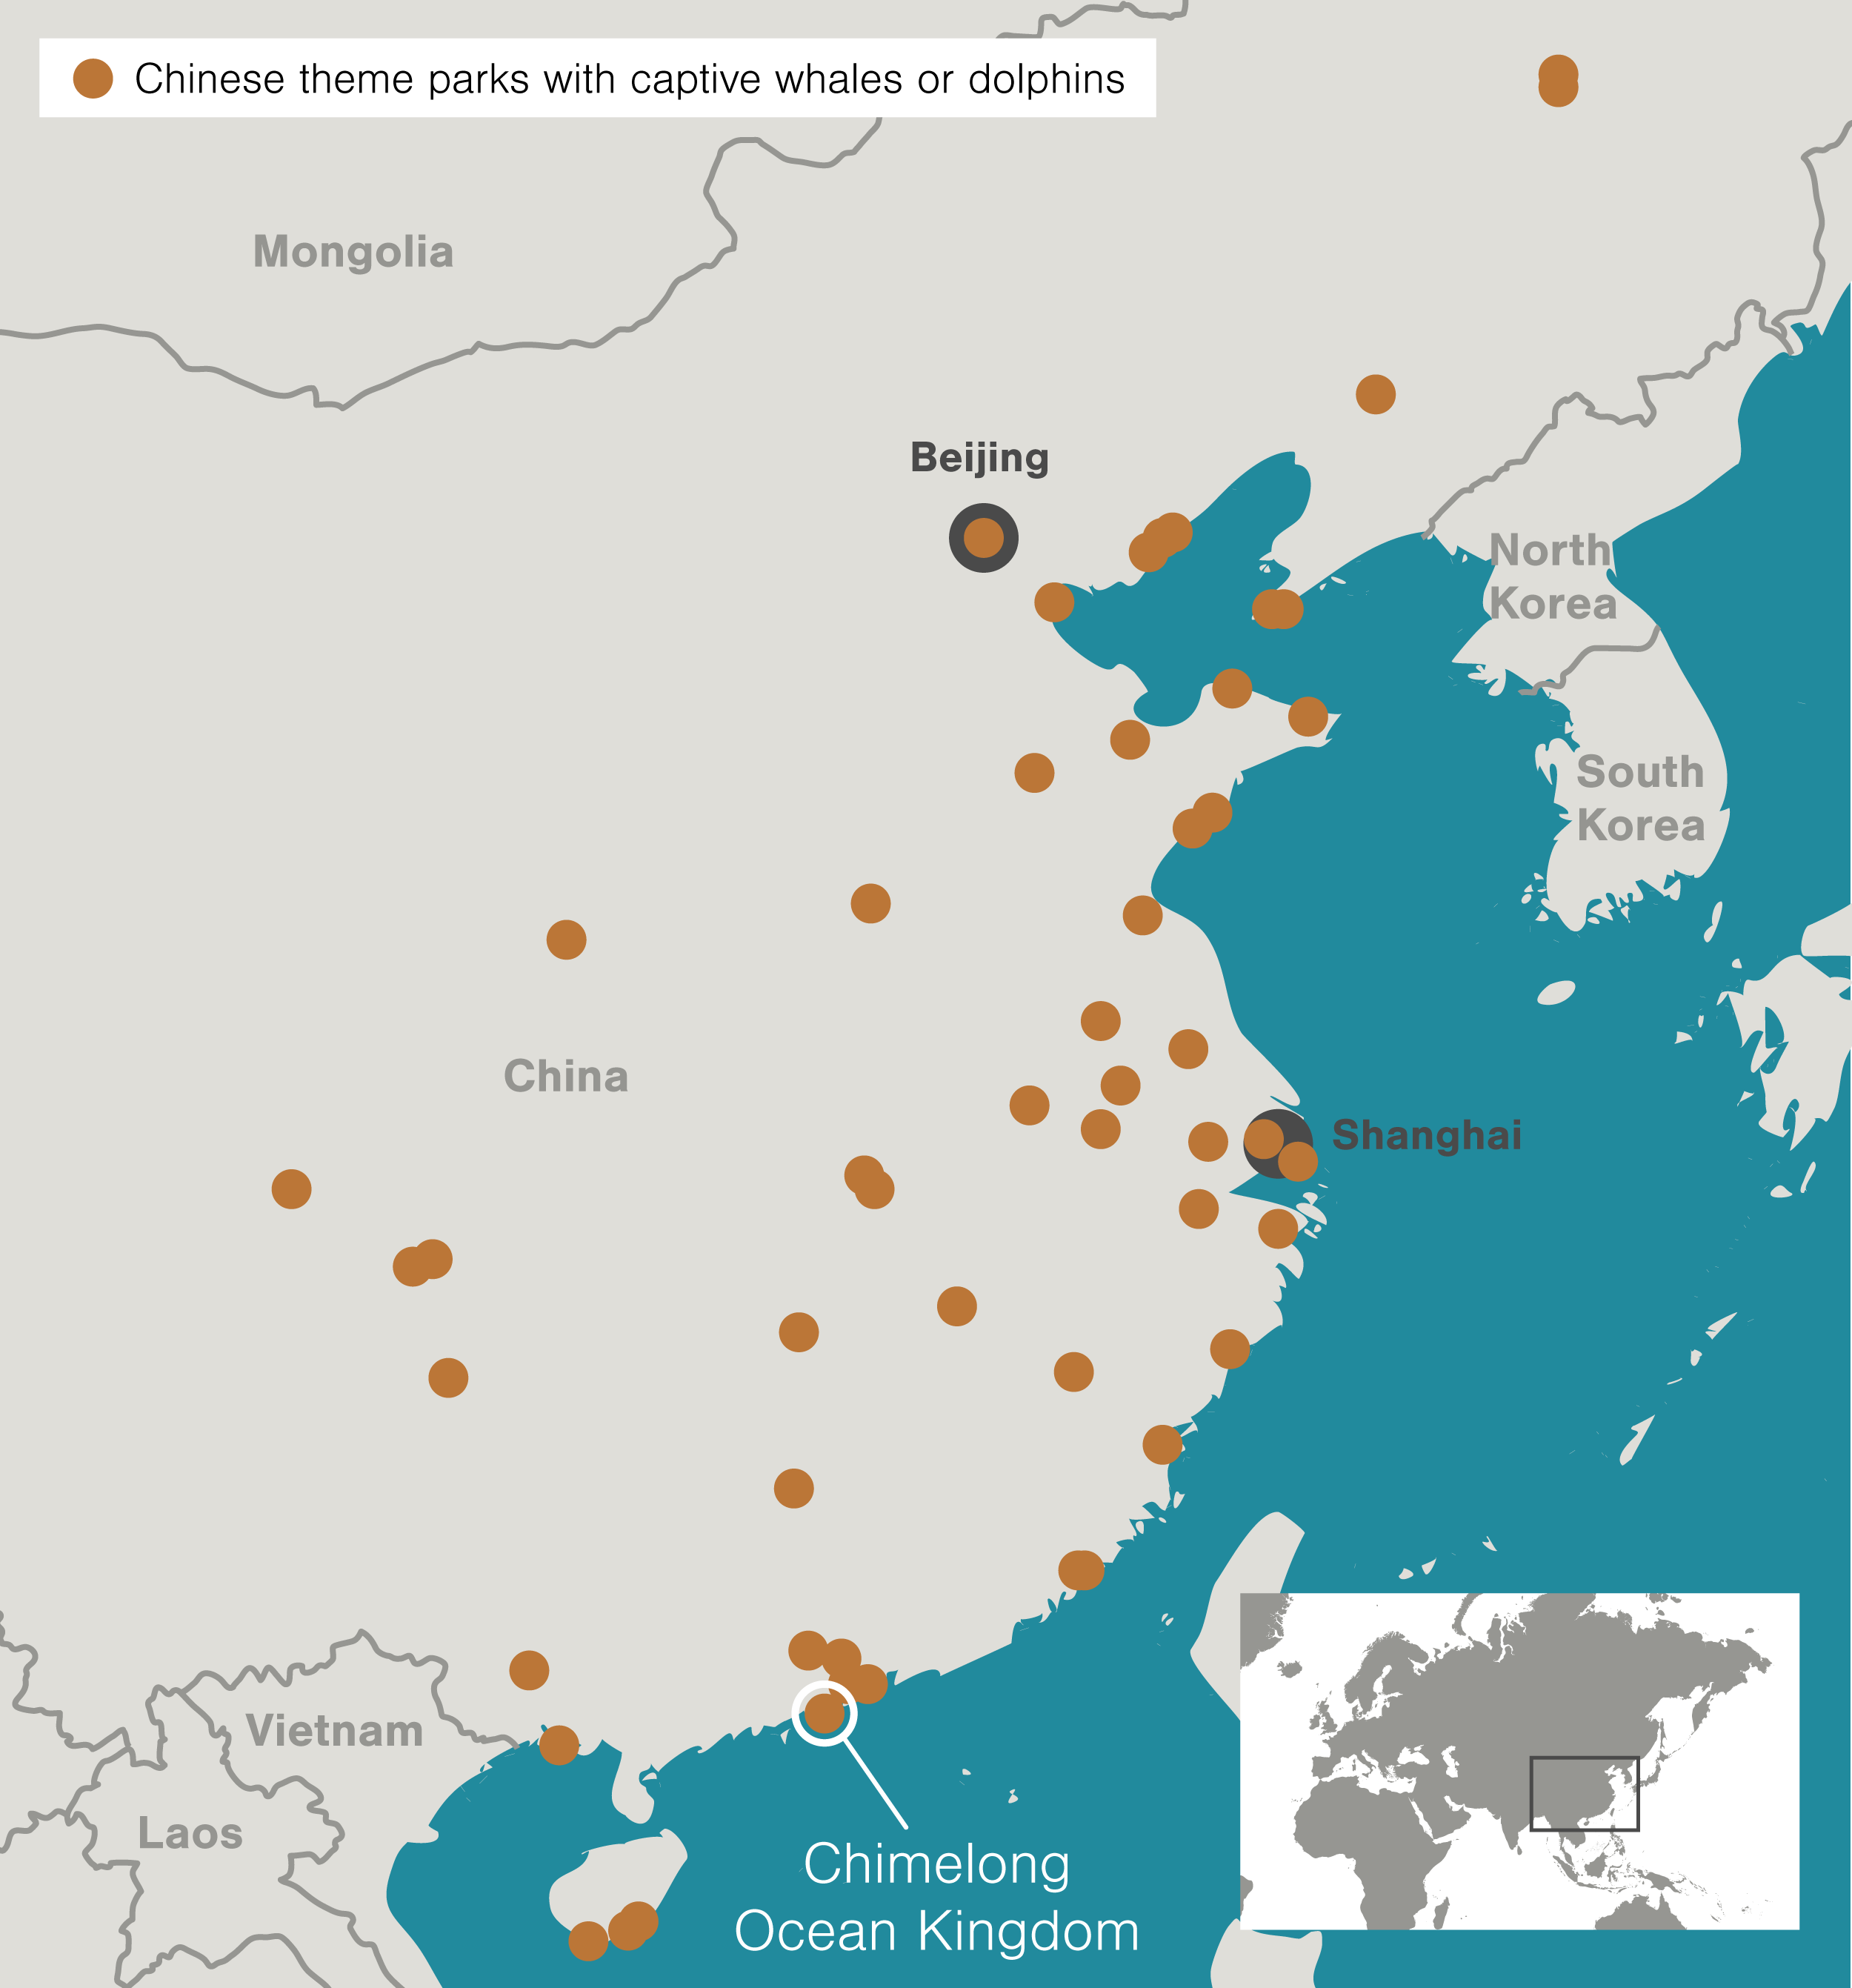 map showing Chinese theme parks with captive whales or dolphins